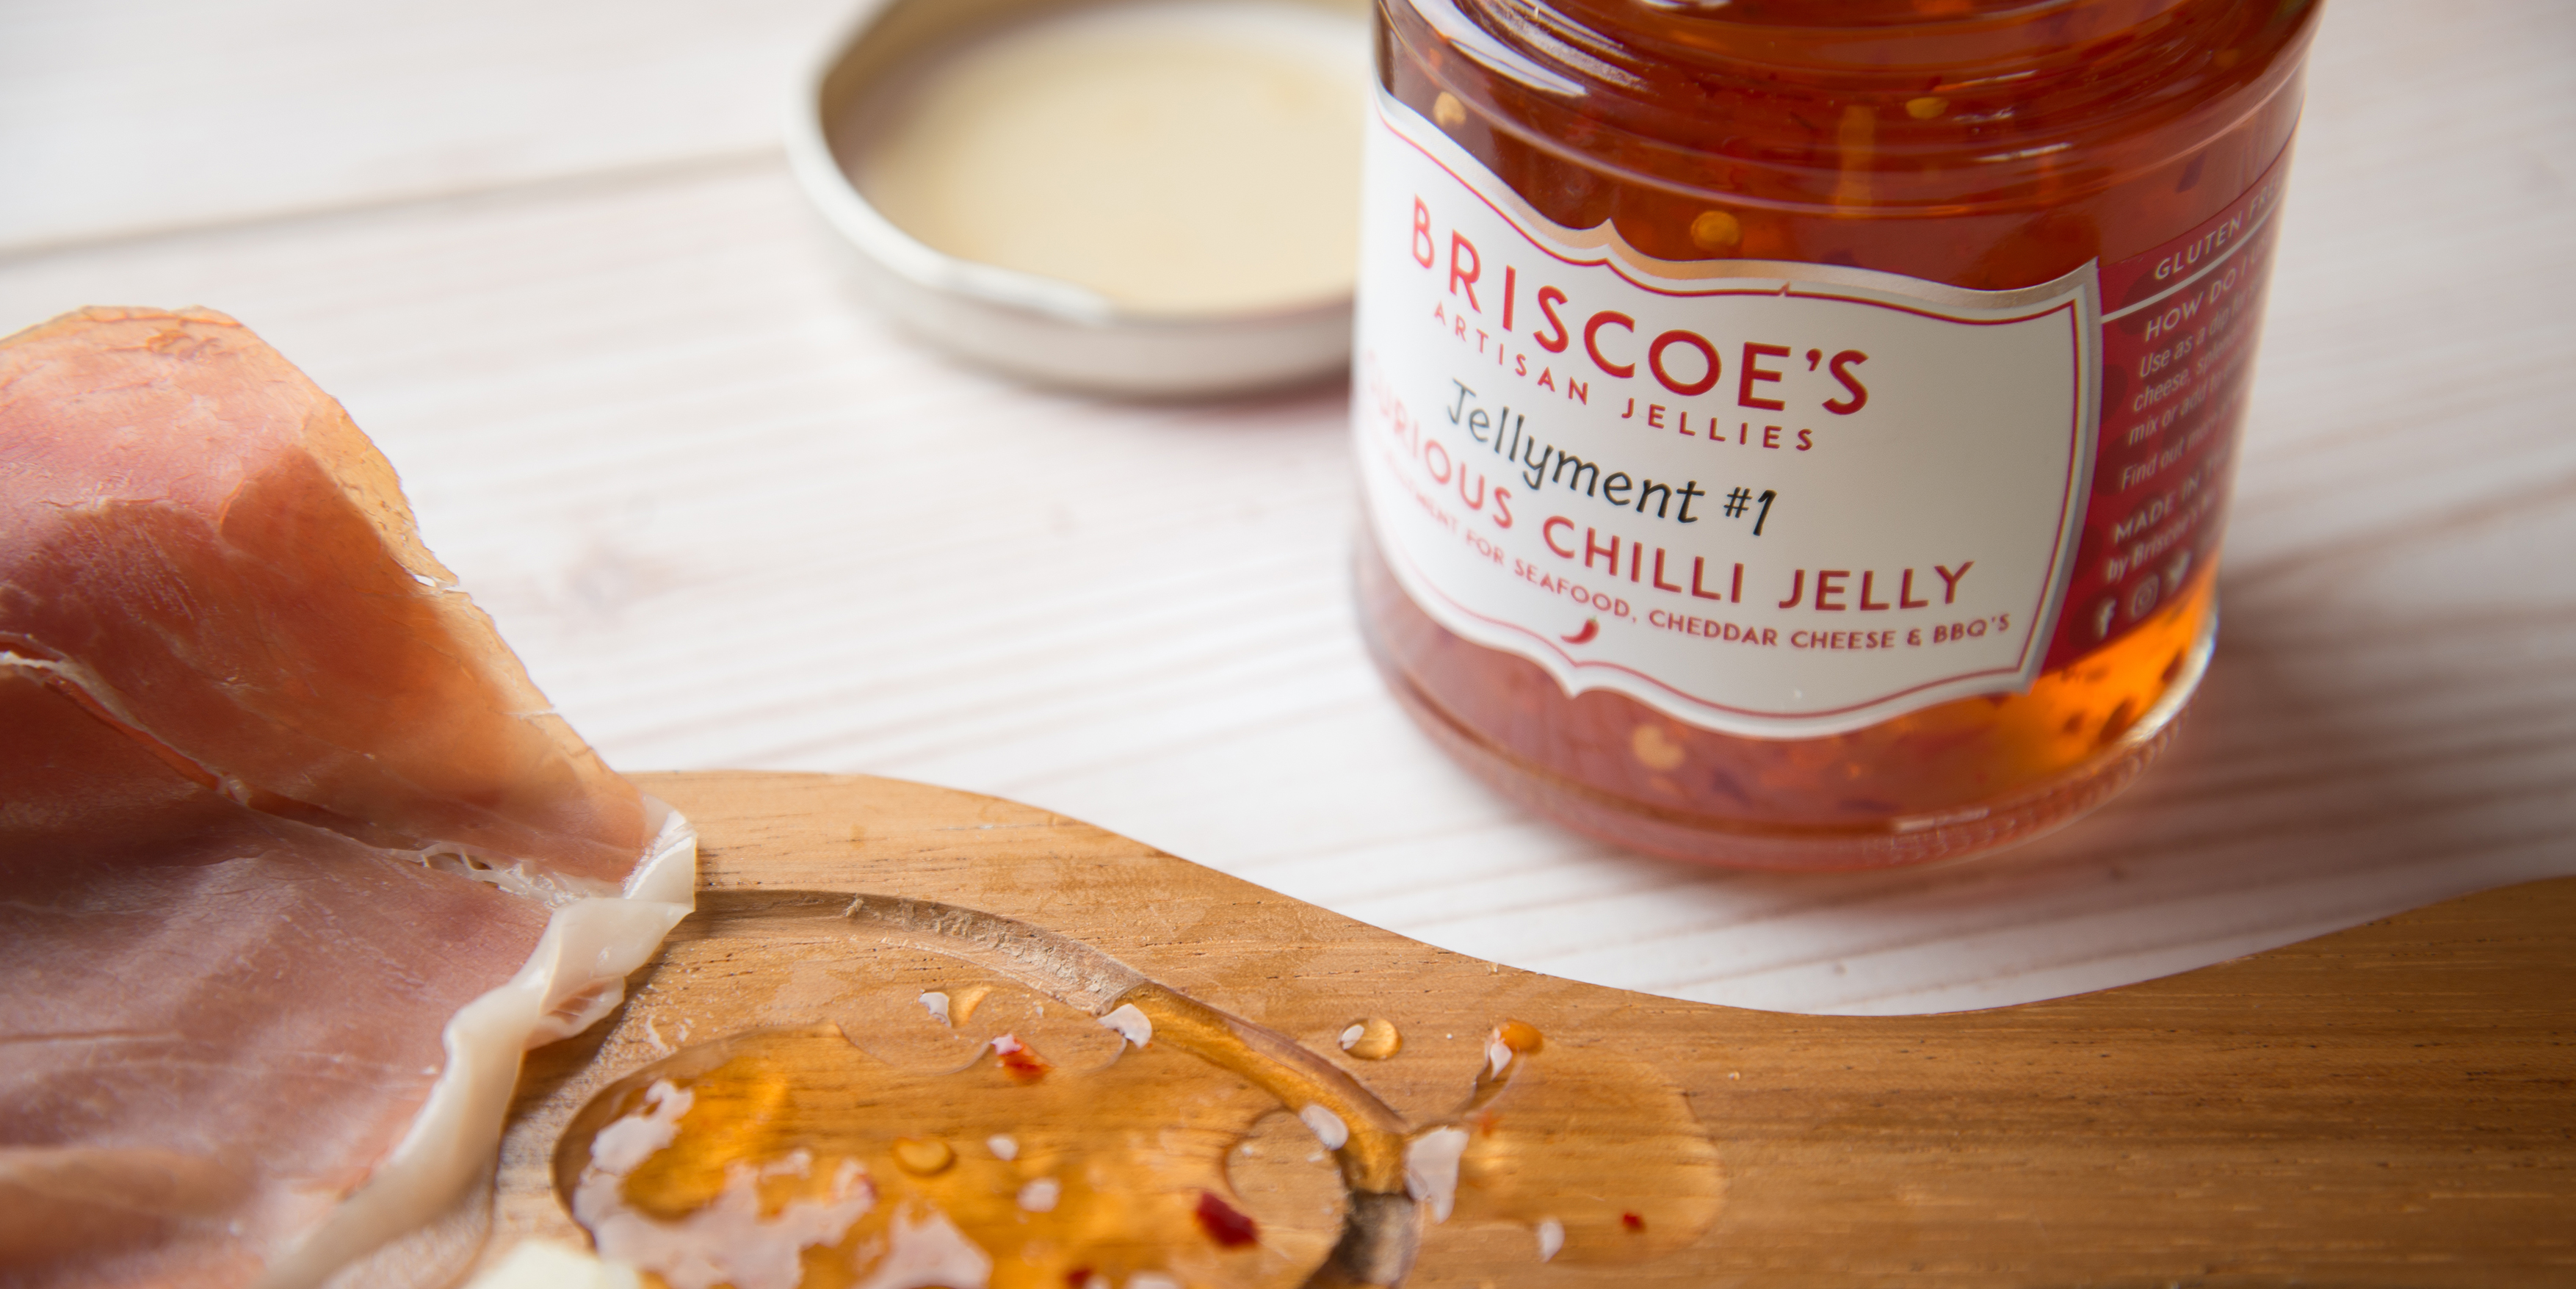 Briscoe's Jellyments Branding and Packaging by Toast Food